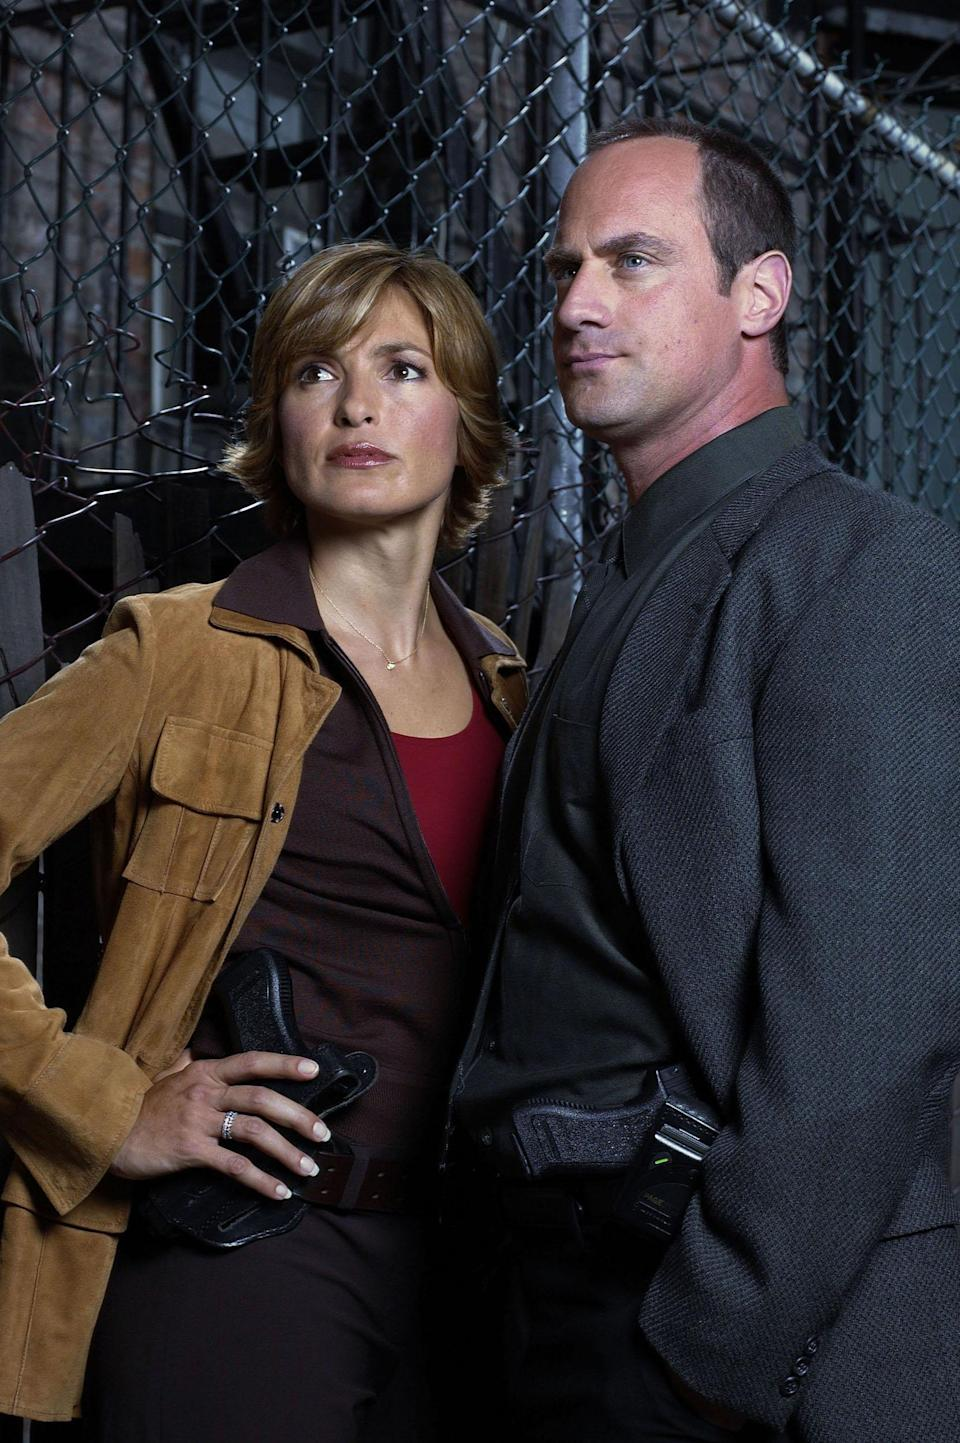 Image: Law & Order: Special Victims Unit - Season 5 (NBC / NBCU Photo Bank via Getty Images)